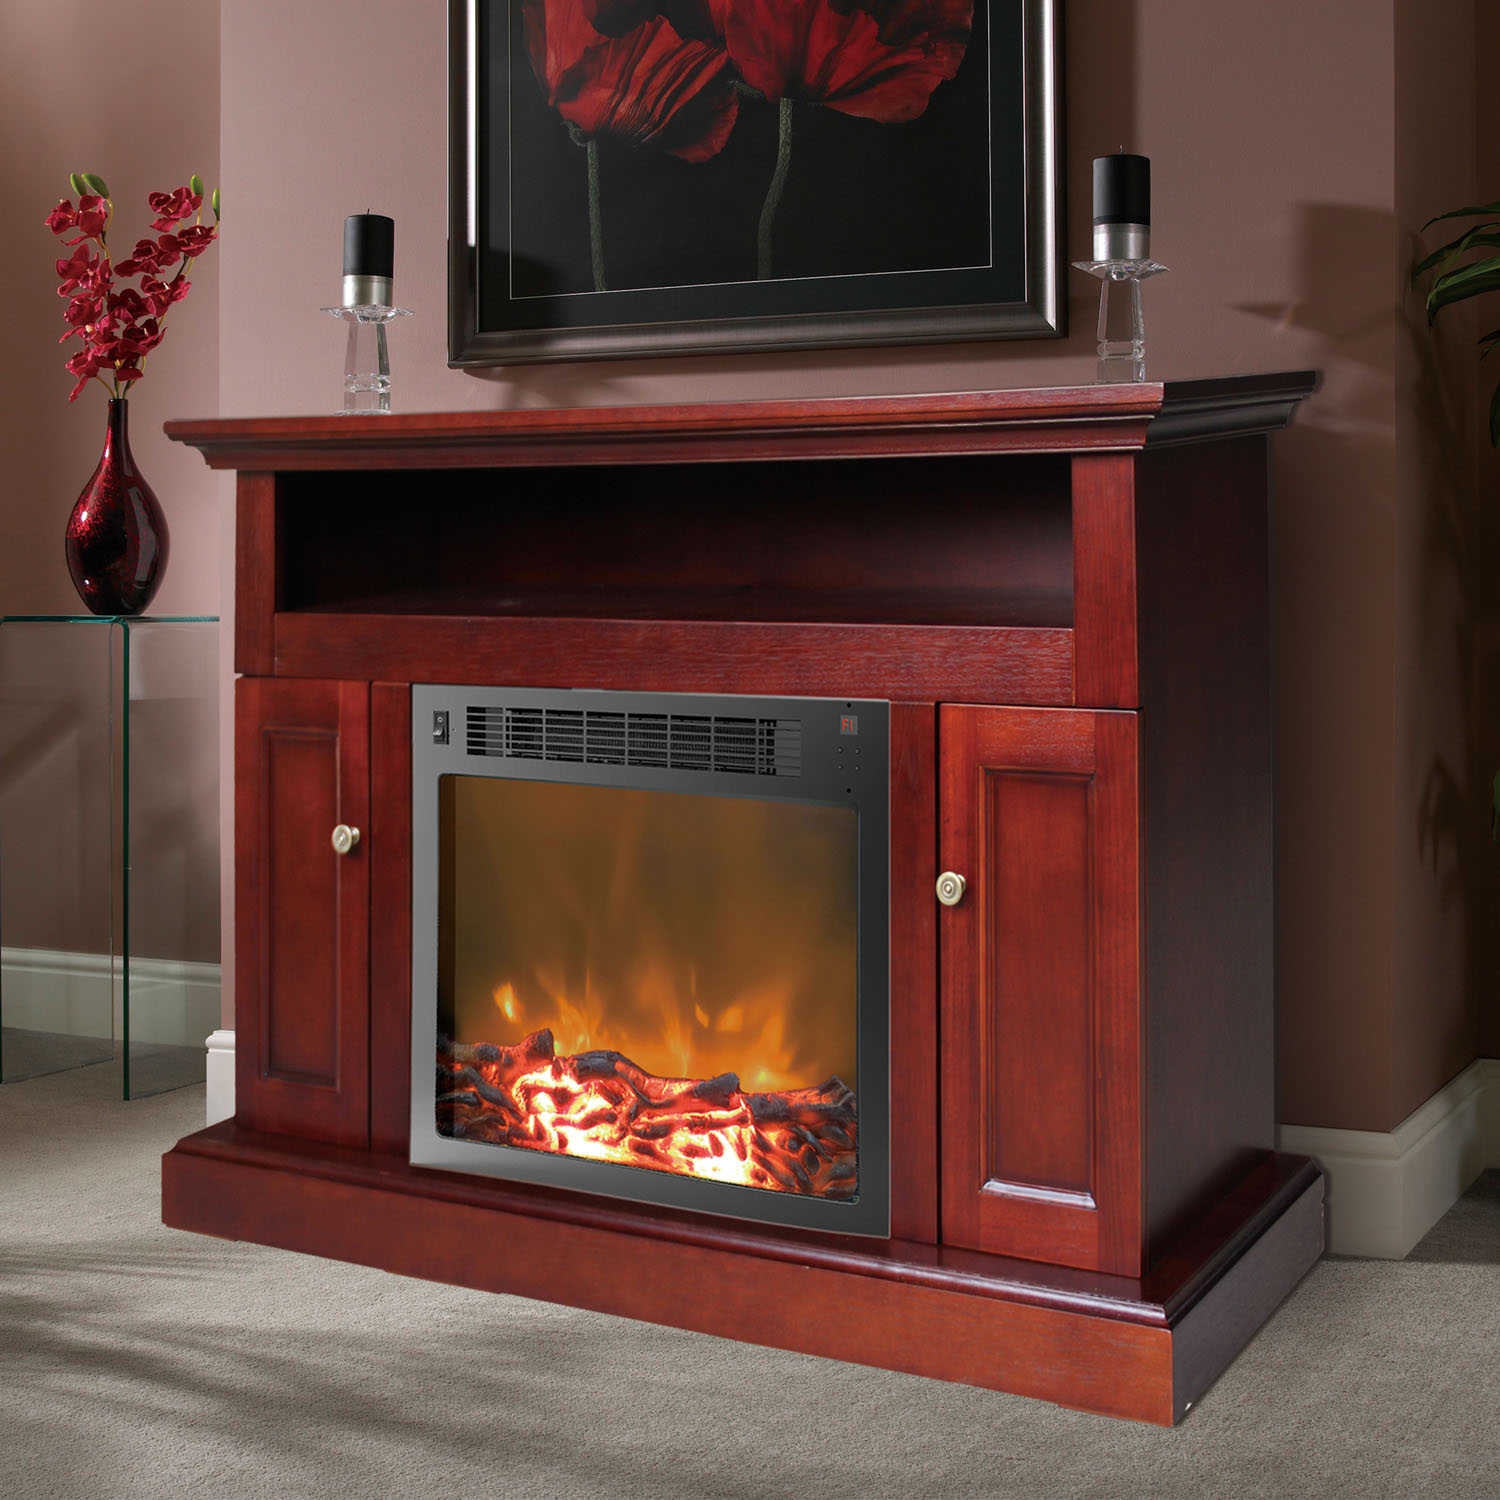 Sorrento Fireplace Mantel With Electronic Fireplace Insert